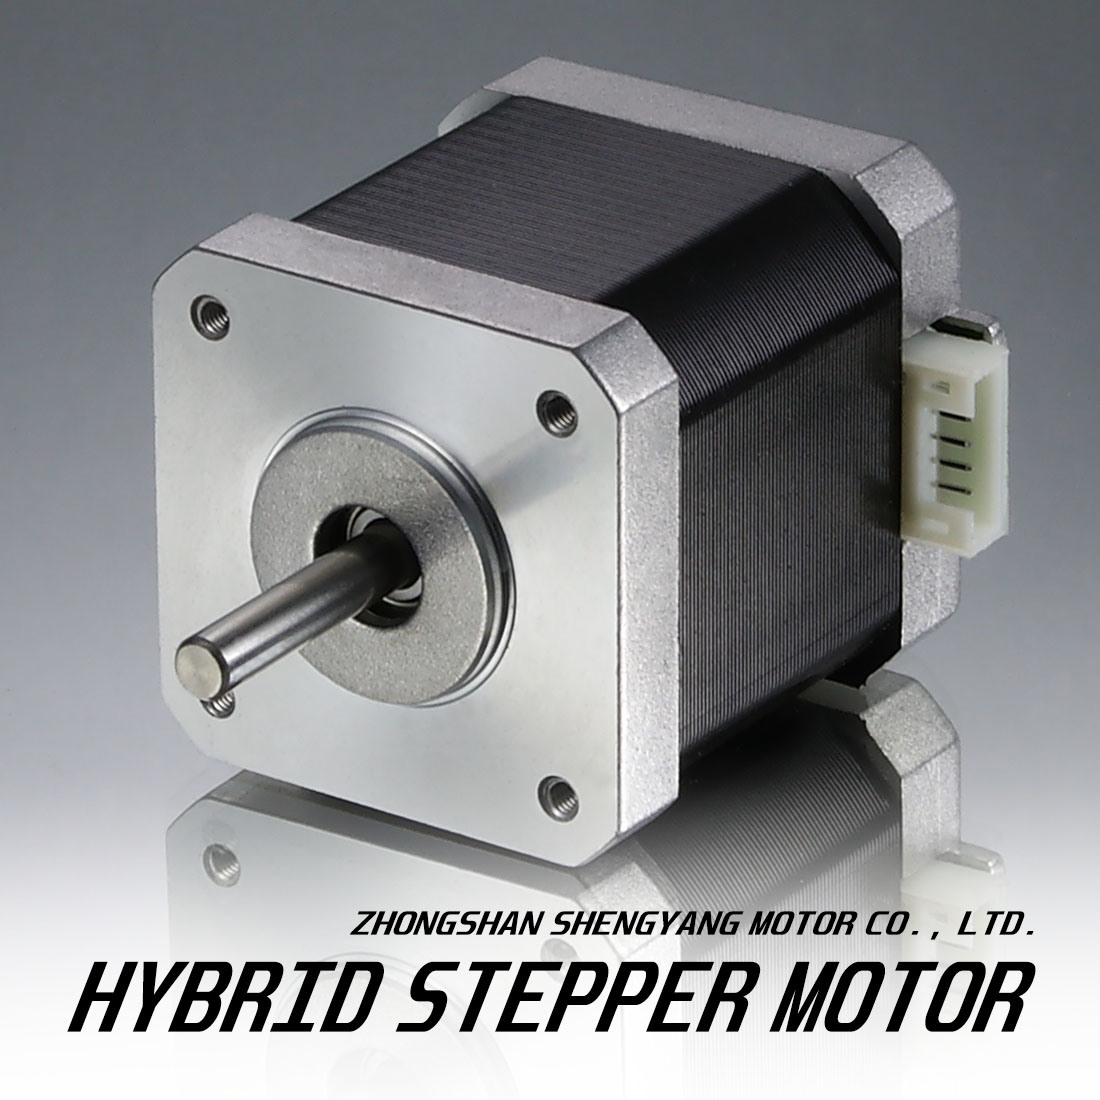 NEMA 17, 34 Electrical Stepper Motor with Competitive Price